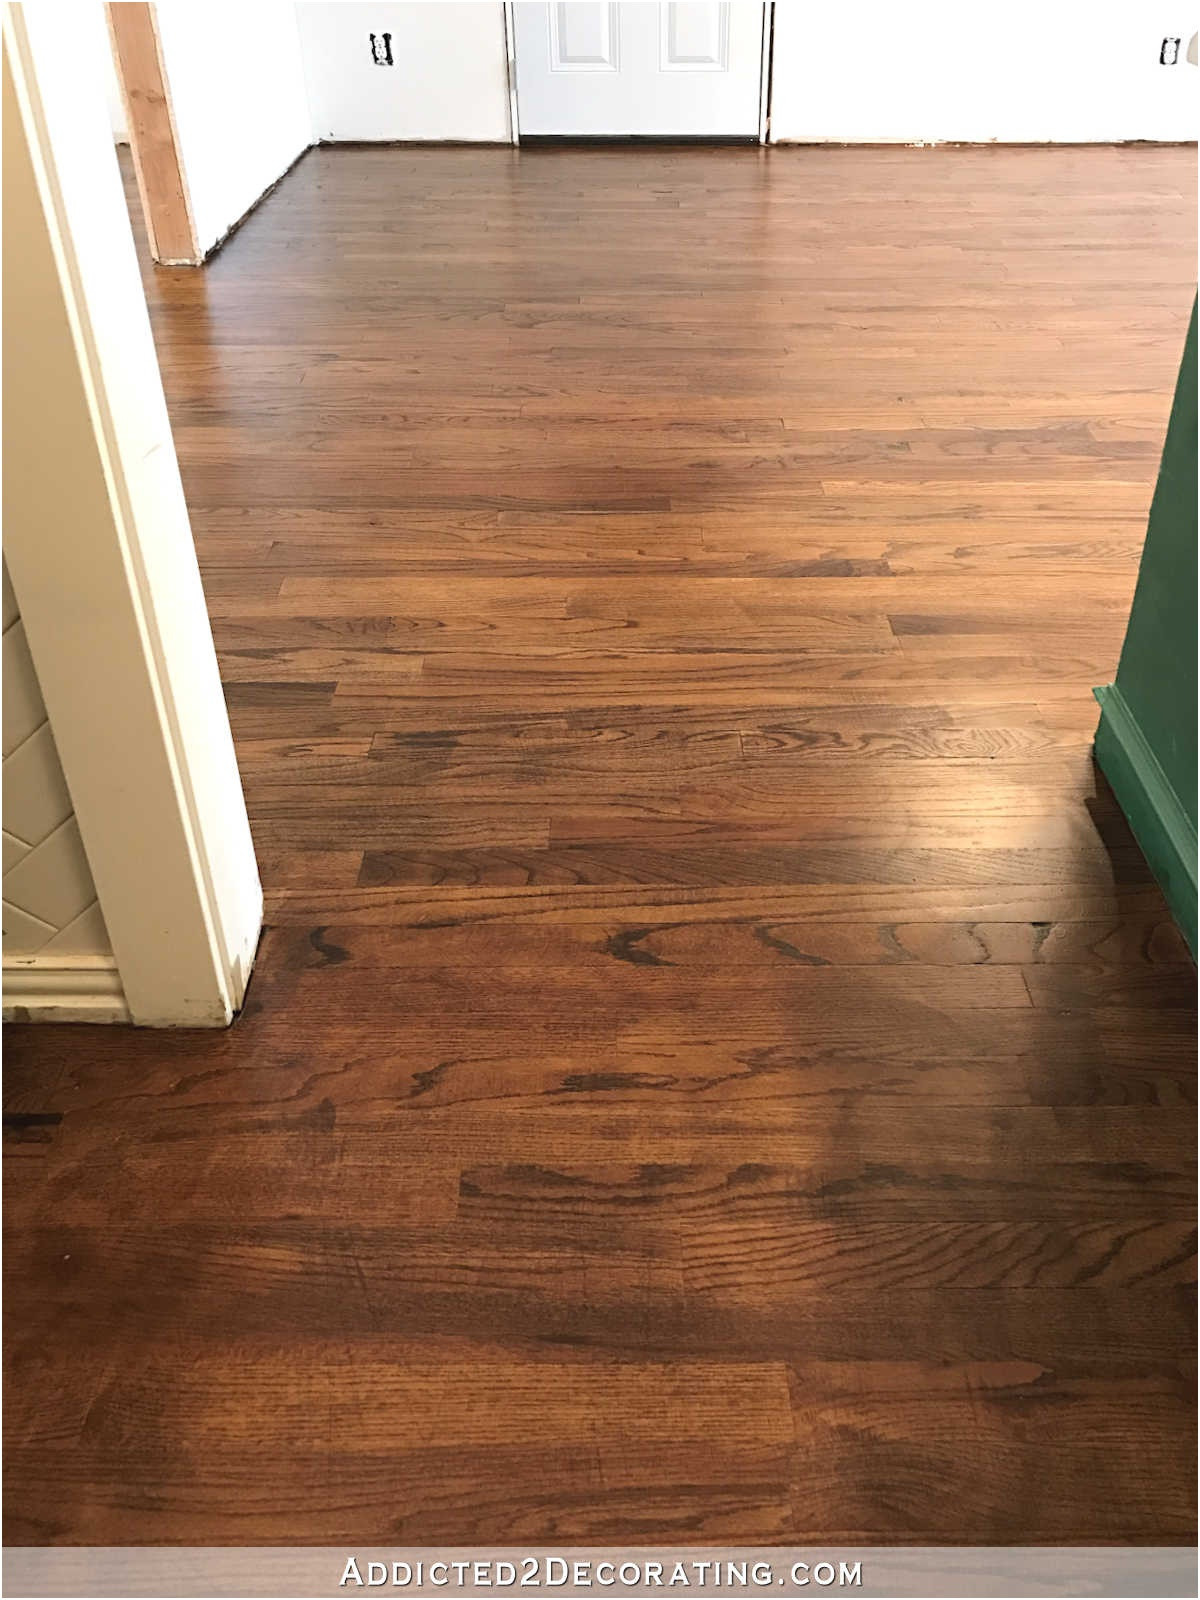 30 attractive Birch Hand Scraped Hardwood Flooring 2021 free download birch hand scraped hardwood flooring of birch hardwood flooring pros and cons flooring design intended for birch hardwood flooring pros and cons fresh modern white kitchens engineered wood f